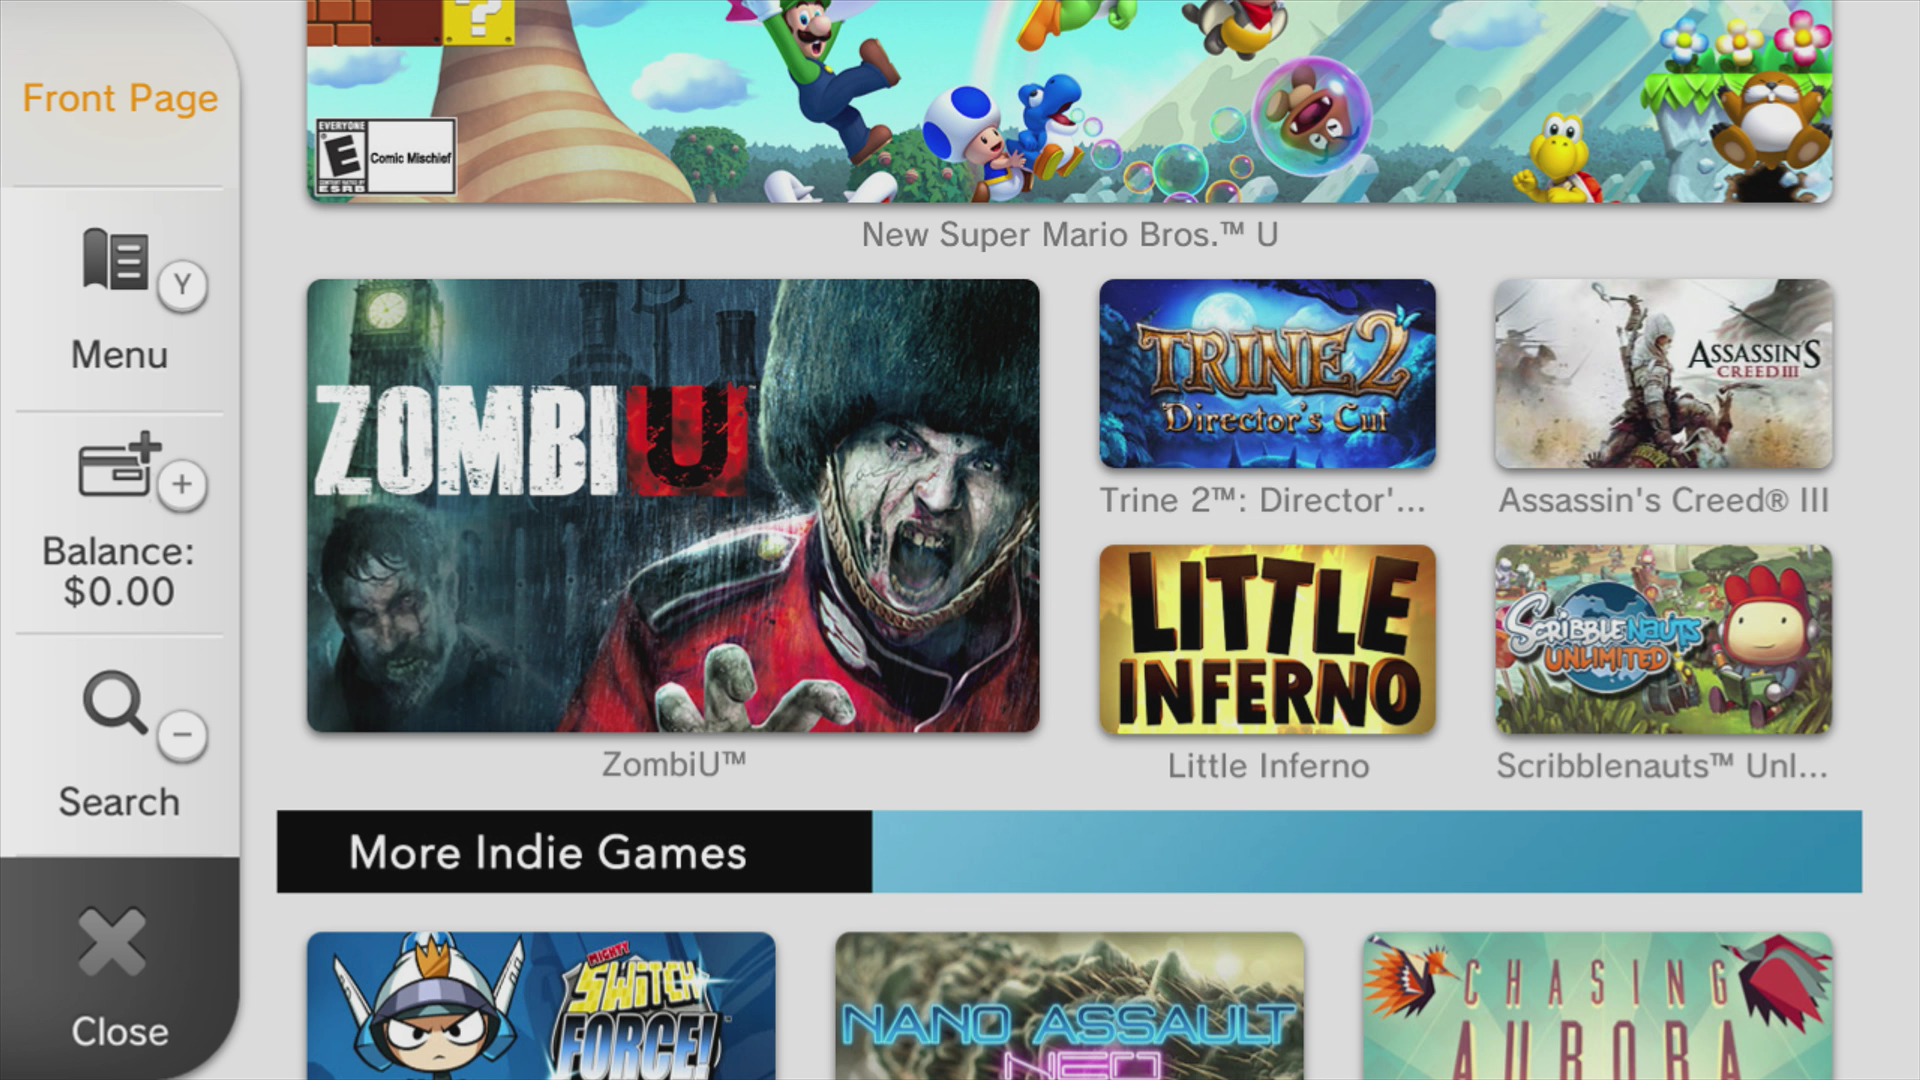 The Wii U eShop has an Indie Game section just below the fold, a nice bit of promotion for games that could really use it.